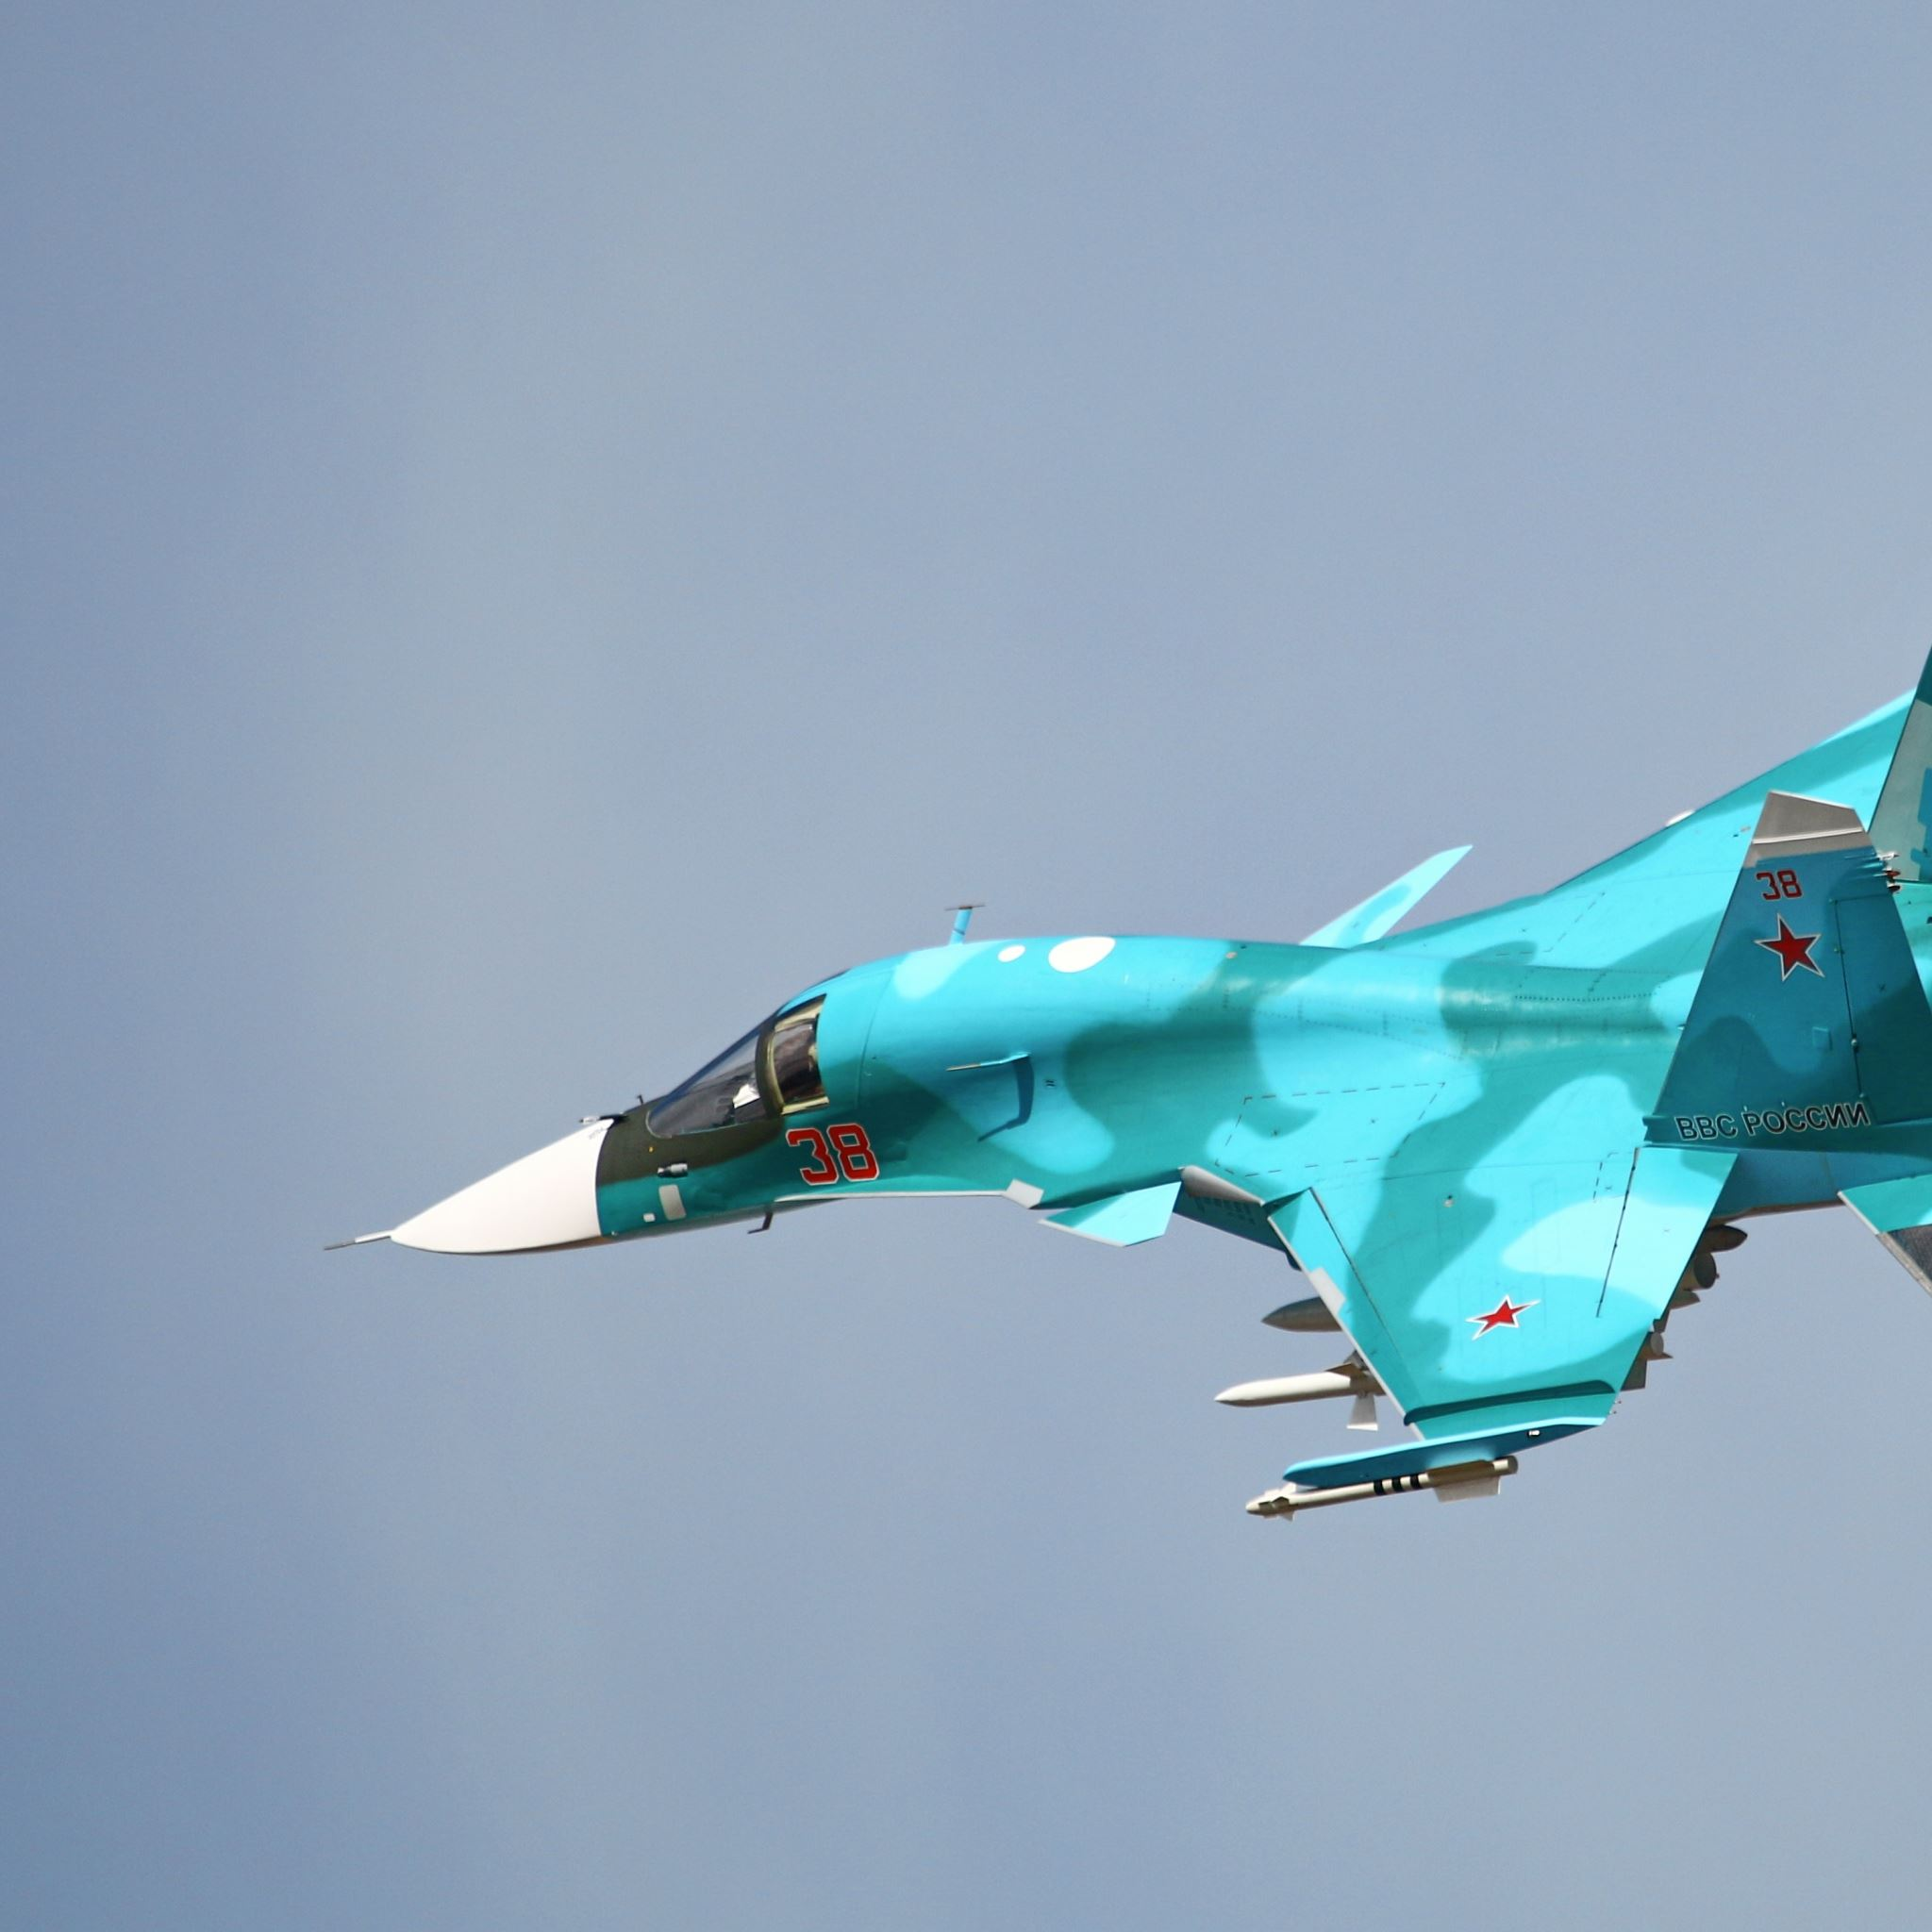 Su 34 Fighter Bomber Sky iPad Air wallpaper